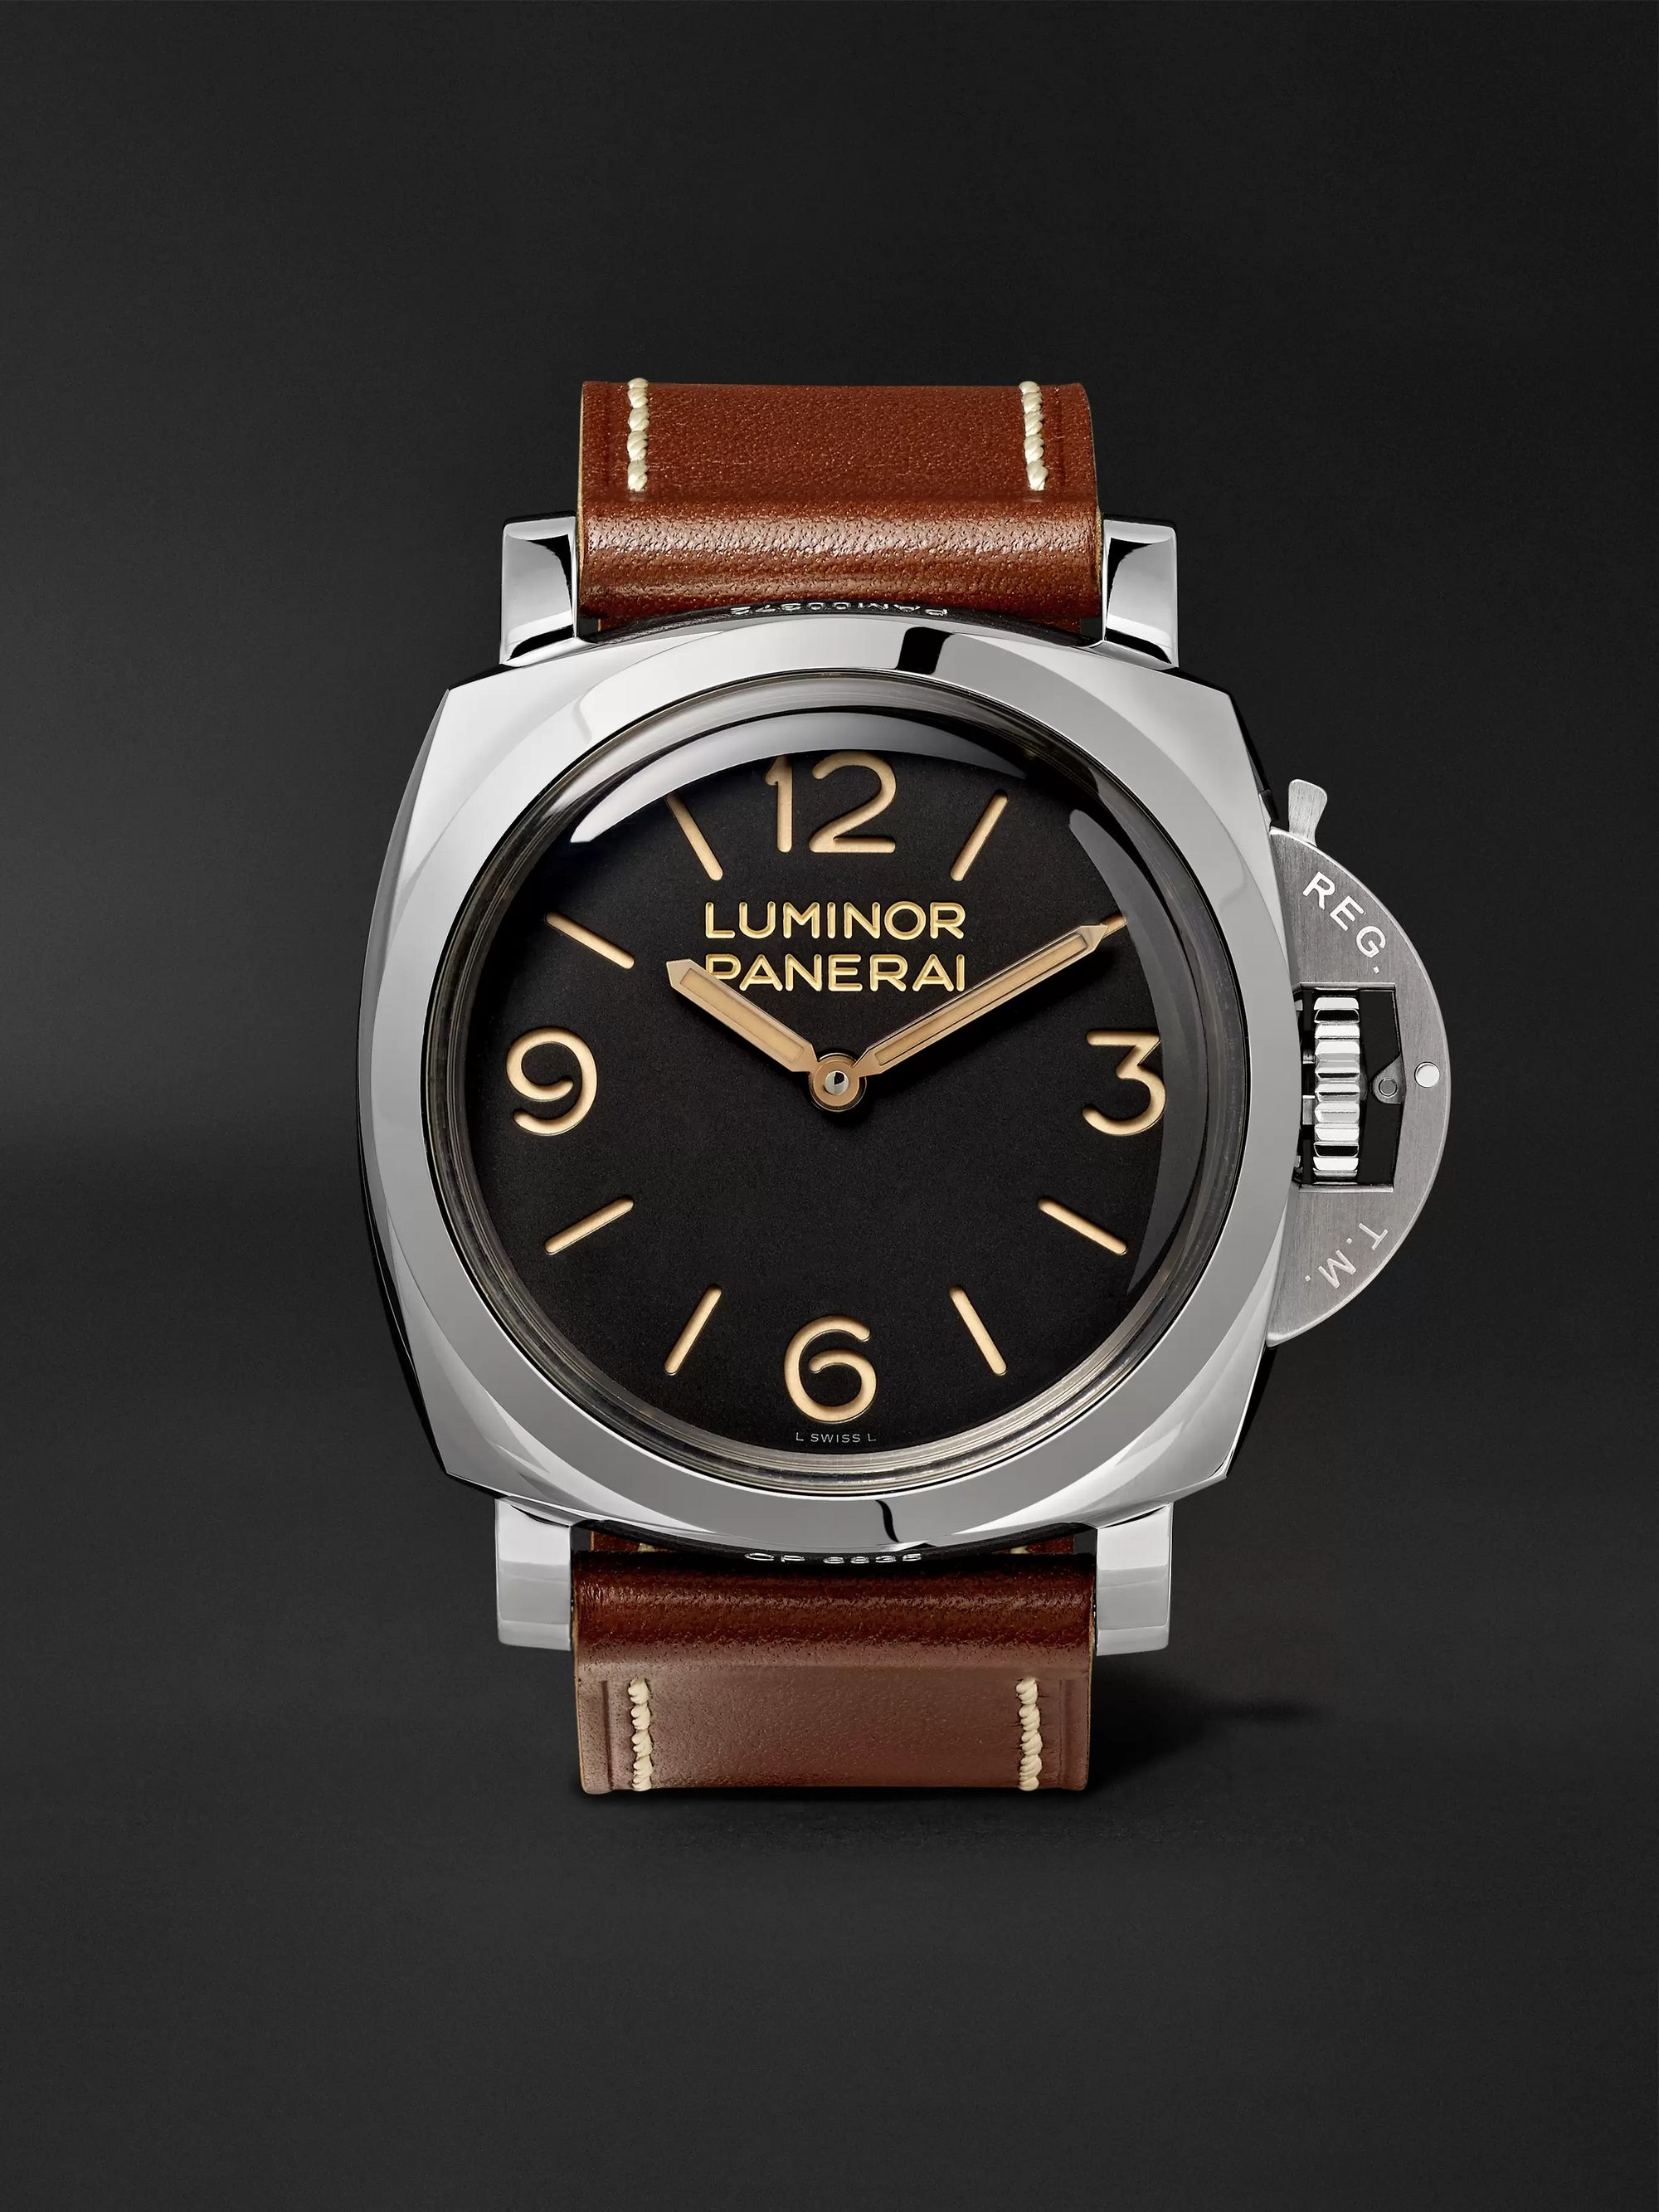 Panerai Luminor 1950 3 Days Acciaio 47mm Stainless Steel and Leather Watch, Ref. No. PAM00372